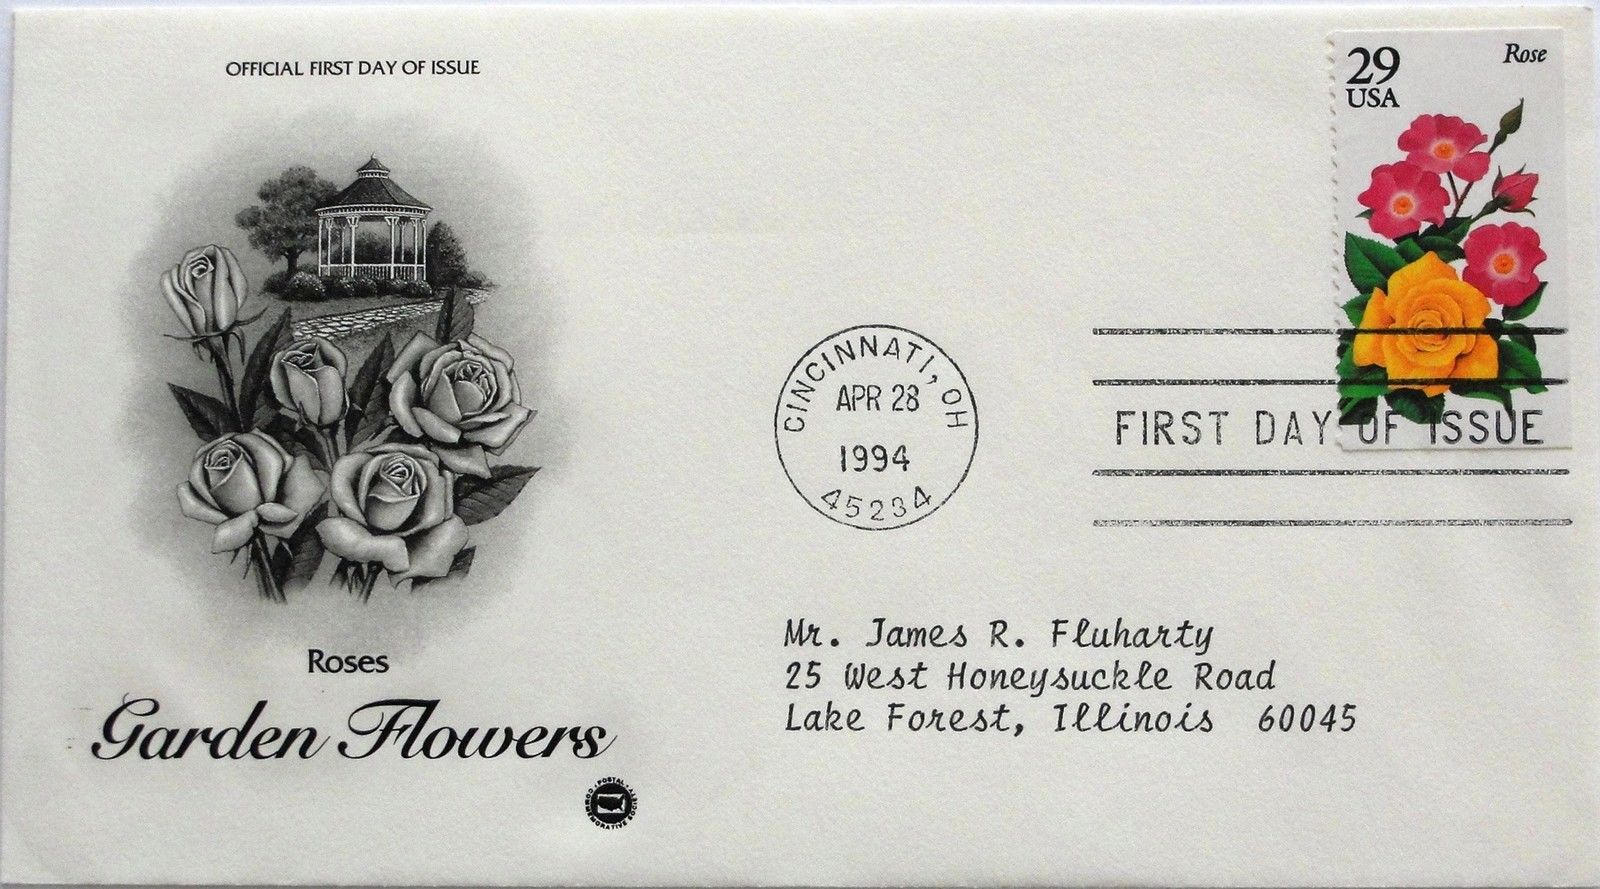 Apr. 28, 1994 First Day of Issue, PC Society Cover, Garden Flowers-Rose #14